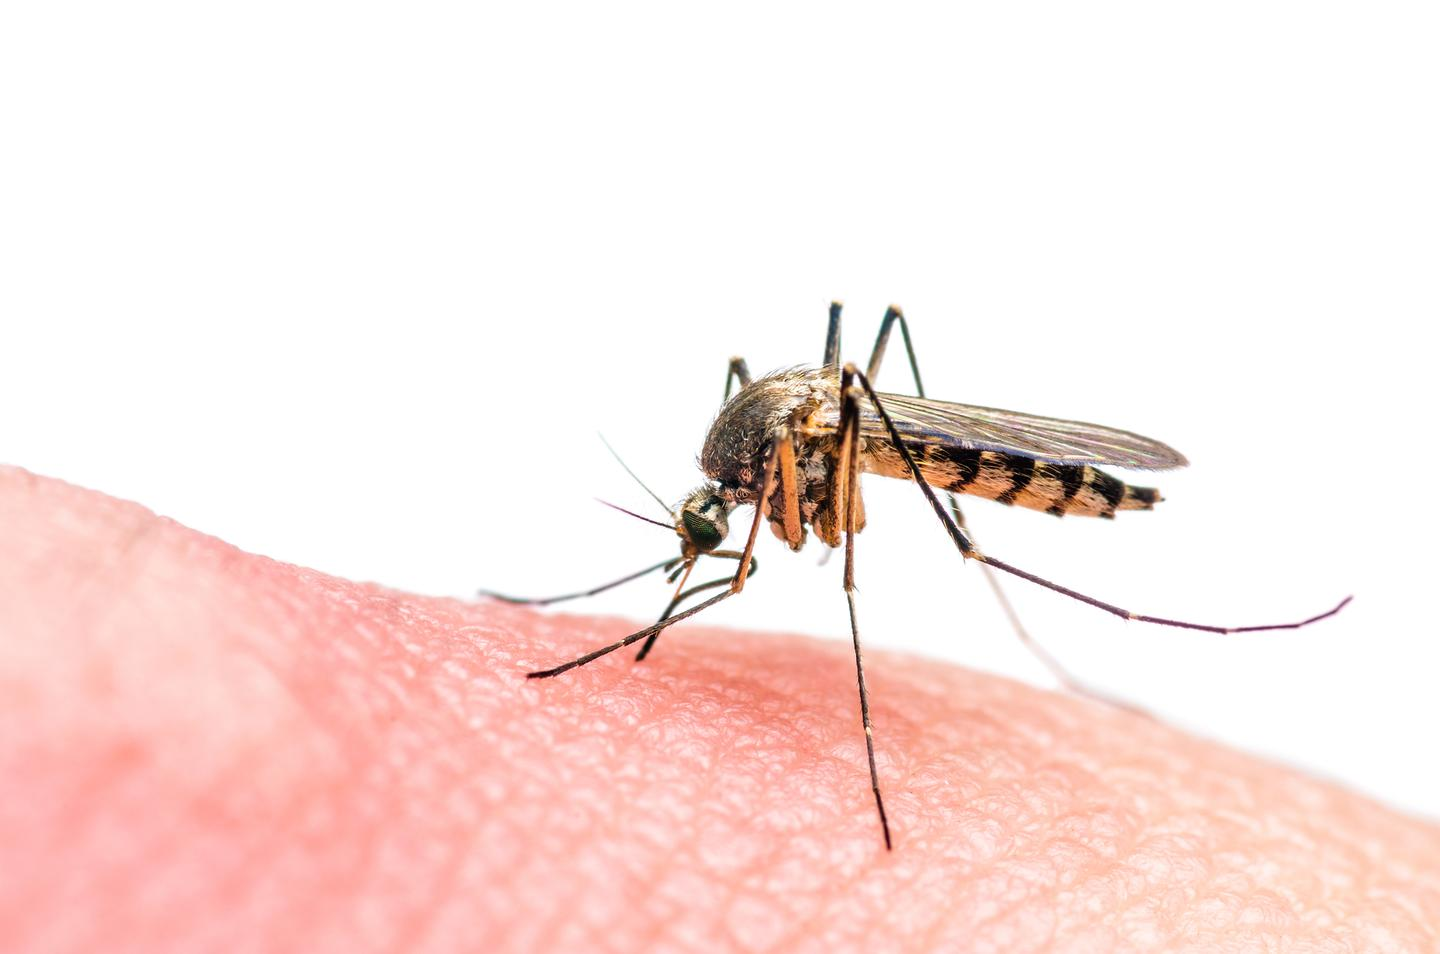 A new research project is looking to enable safer testing of genetic modifications to mosquito populations